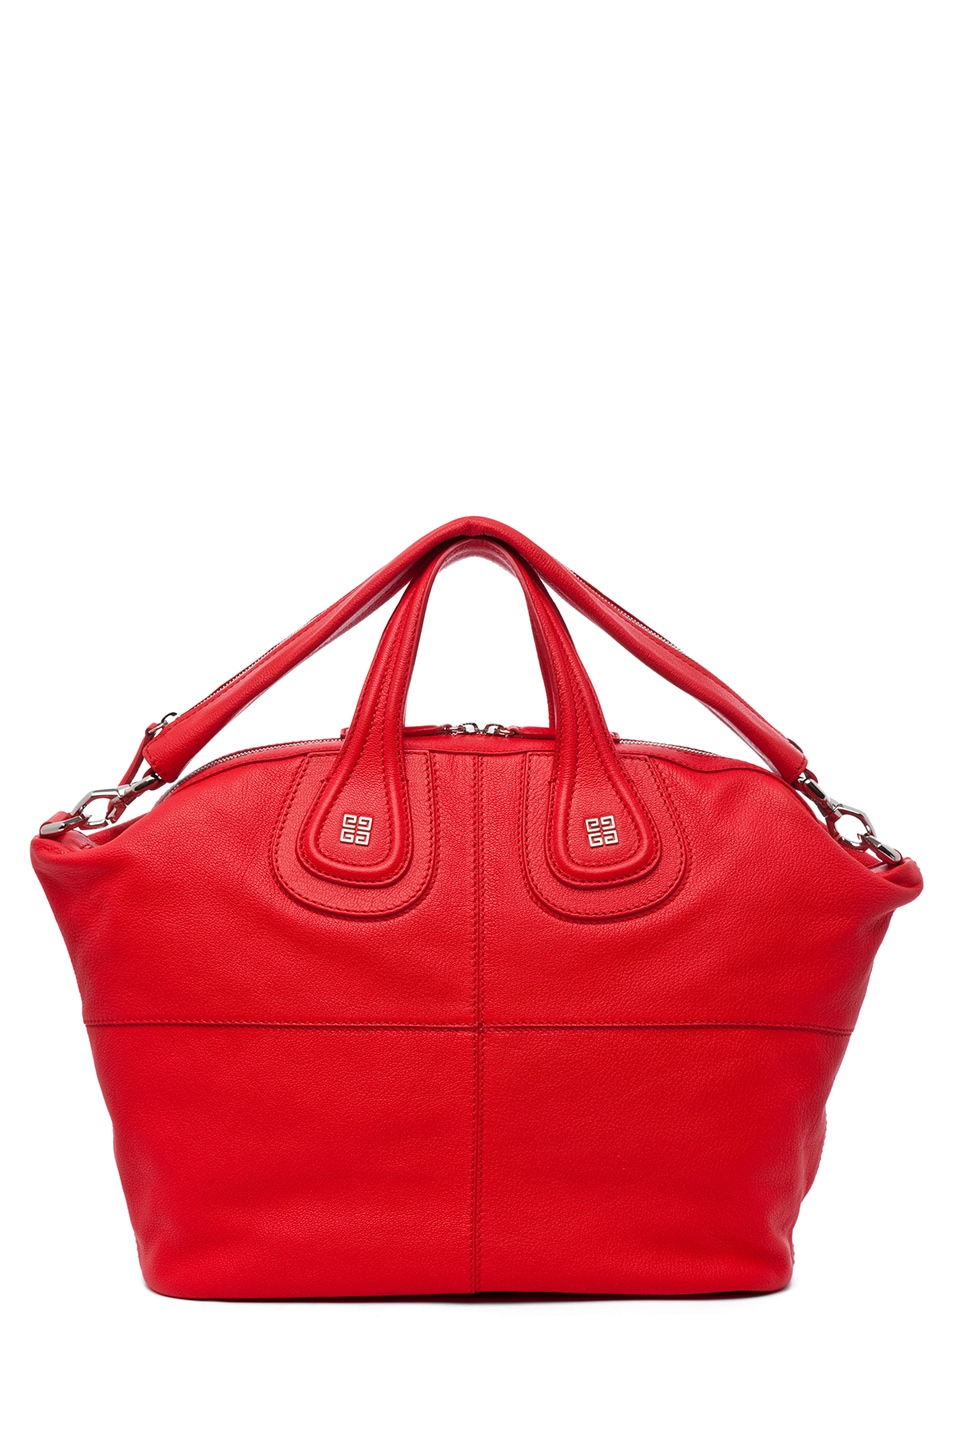 Image 5 of Givenchy Medium Nightingale in Red